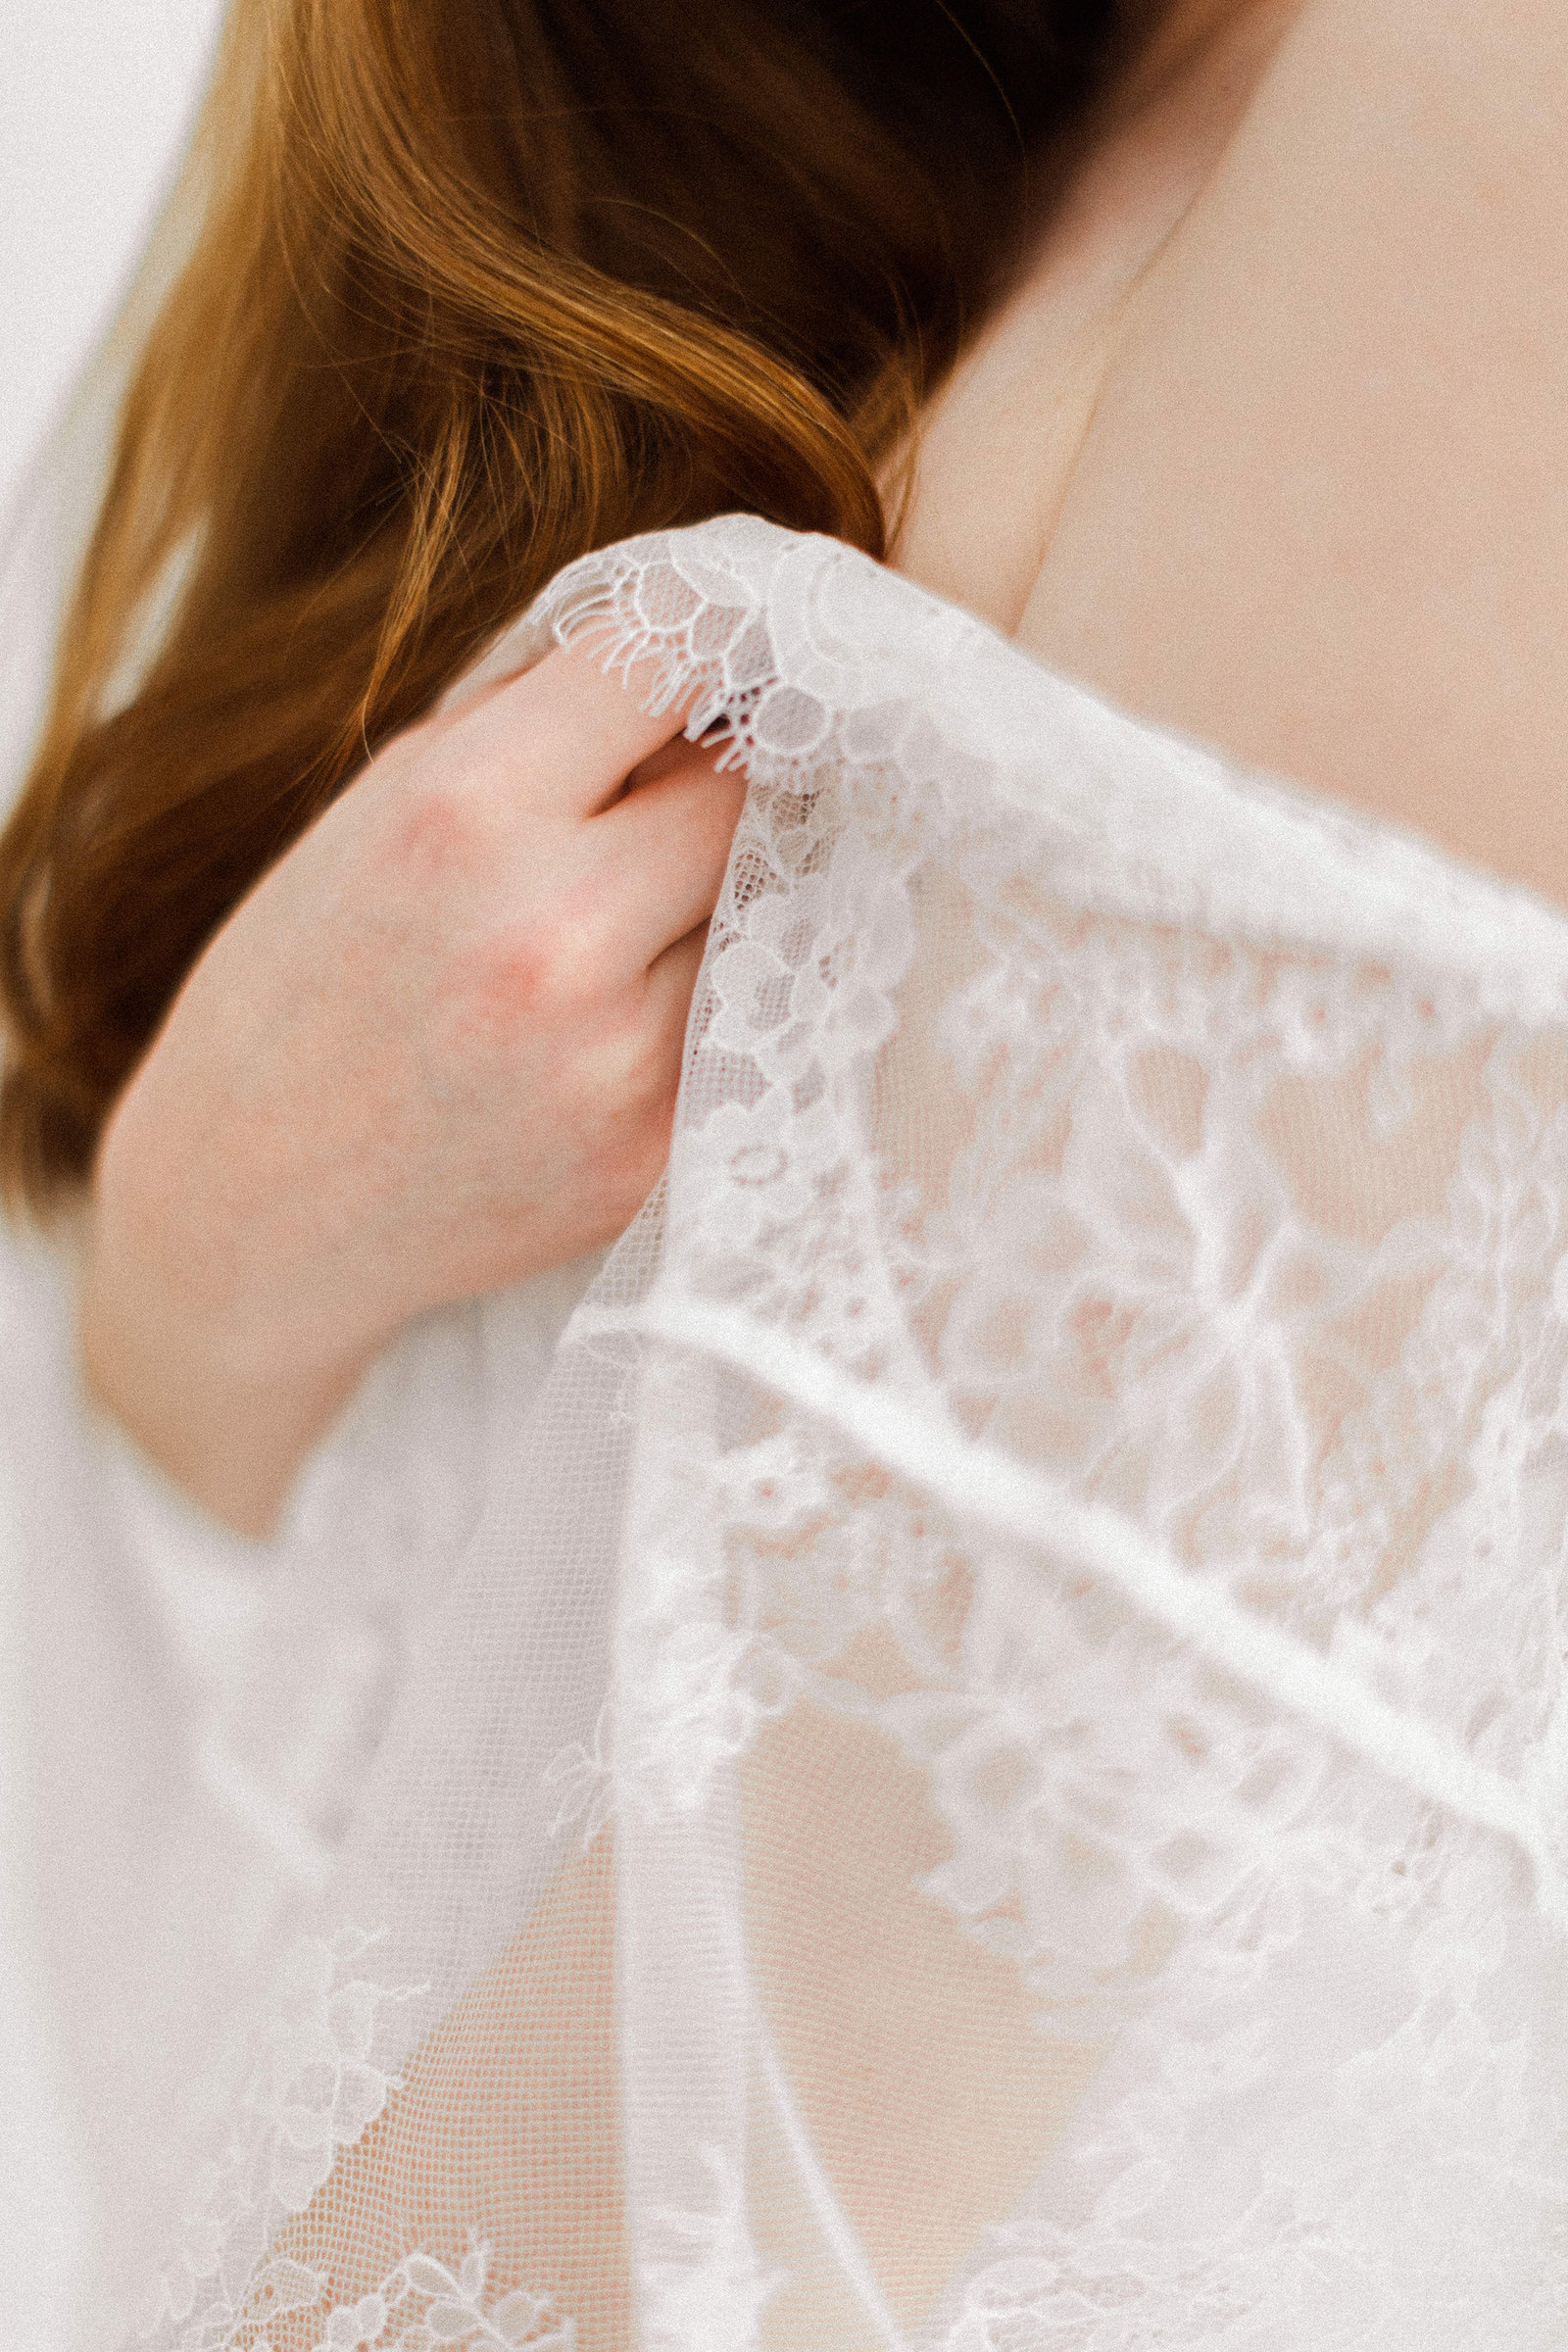 white lace lingerie robe